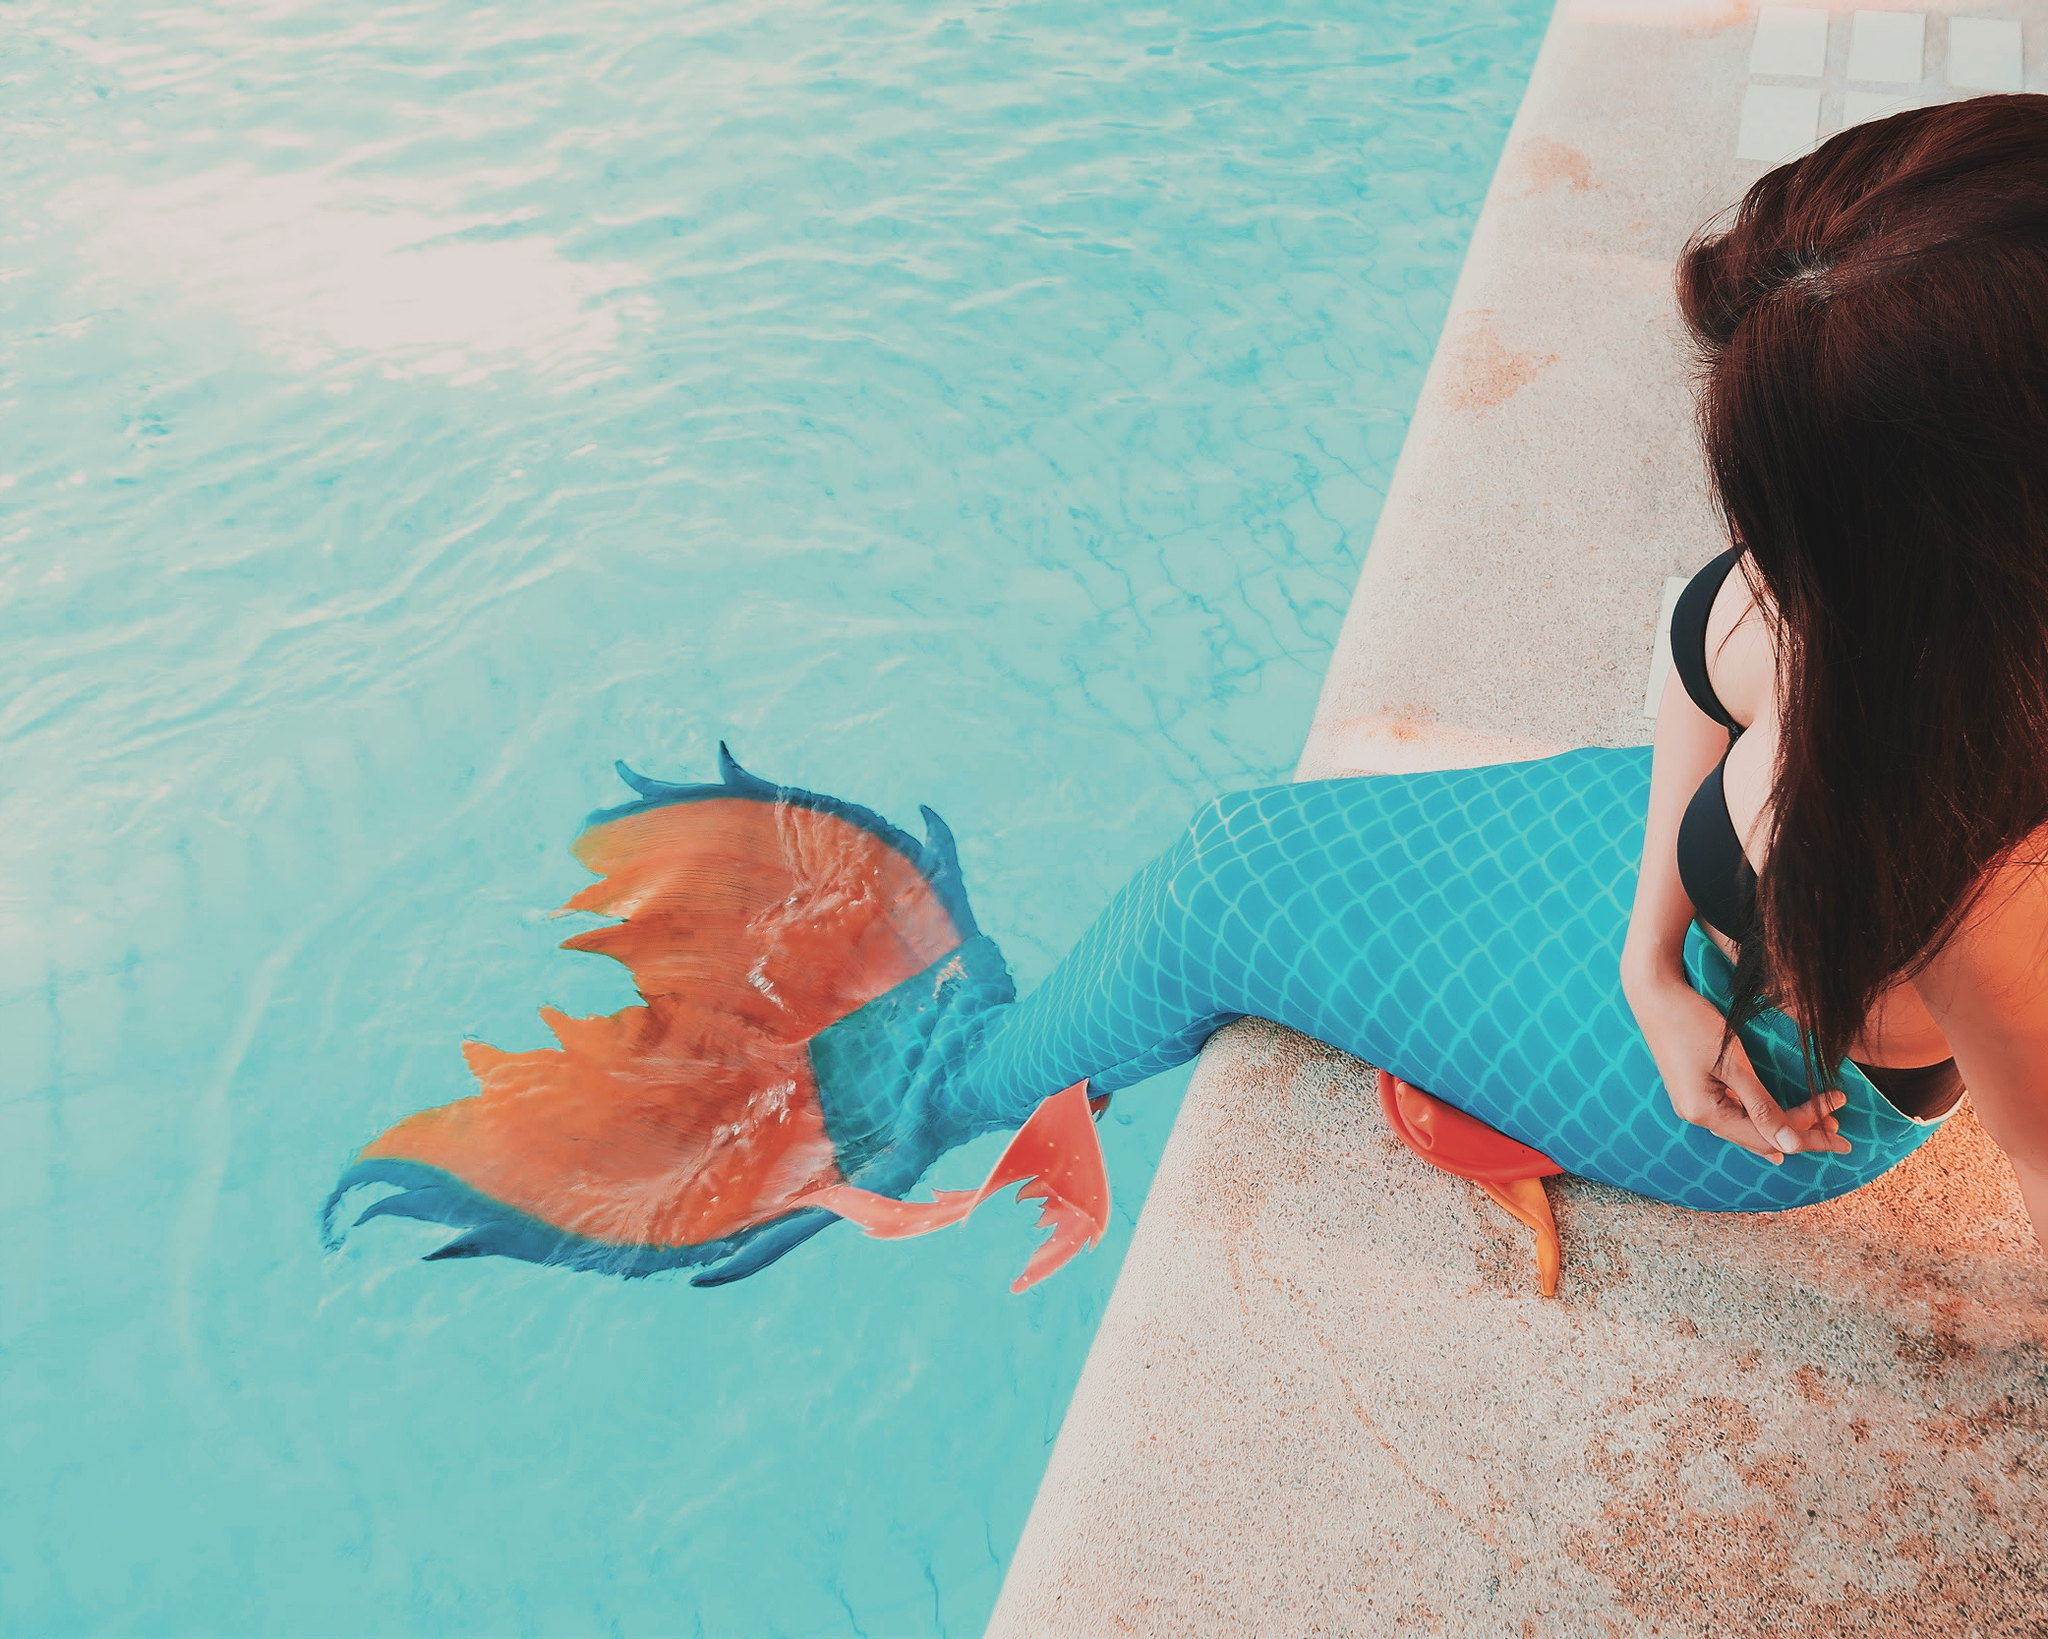 Bucket List: Swim Like a Mermaid Mermaid Swimming school Philippines